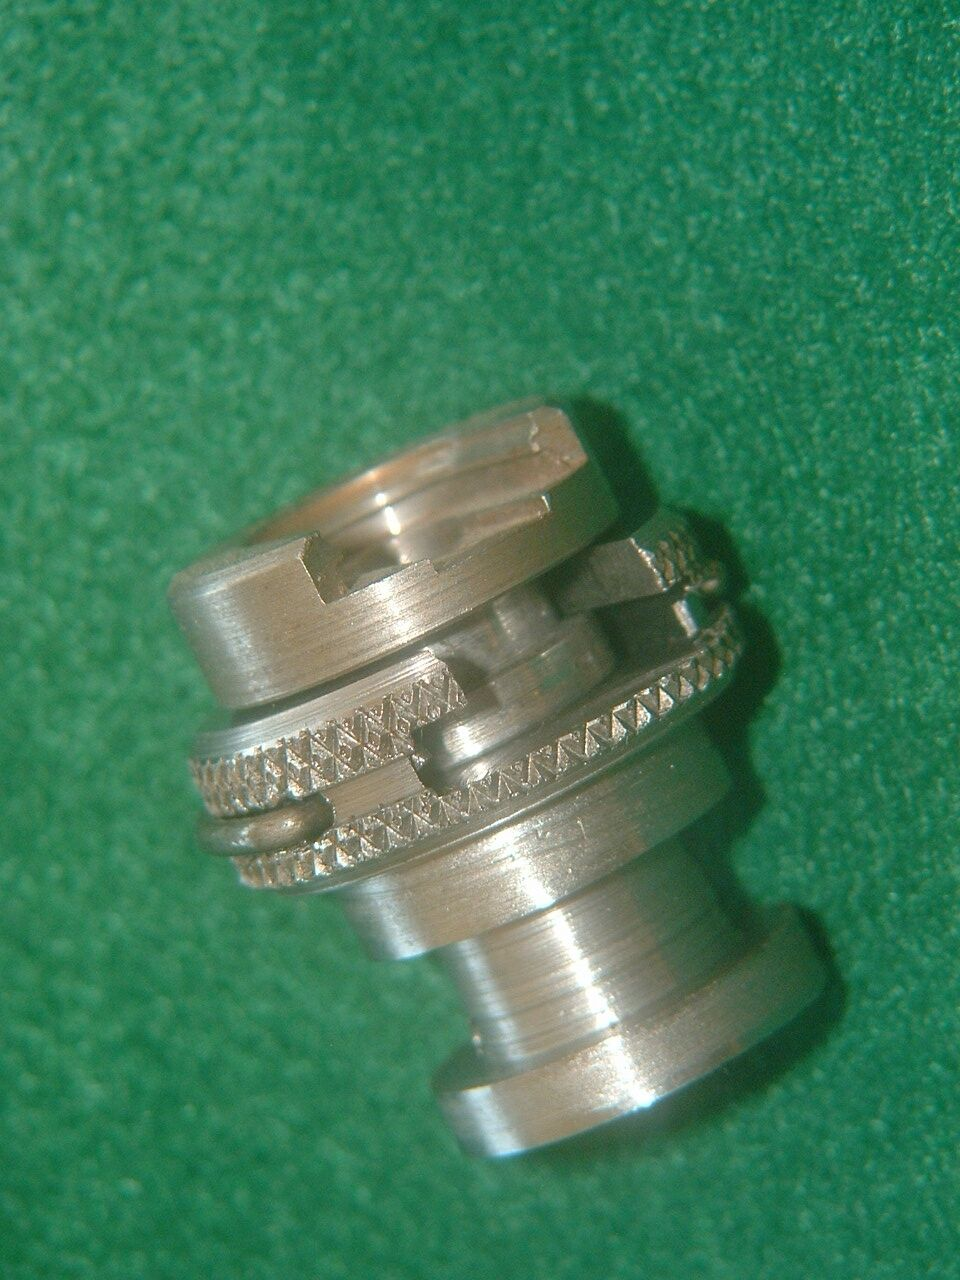 Herters Shell Holder Adapter Use Rcbs/lee Shellholder Fits Lachmiller Also